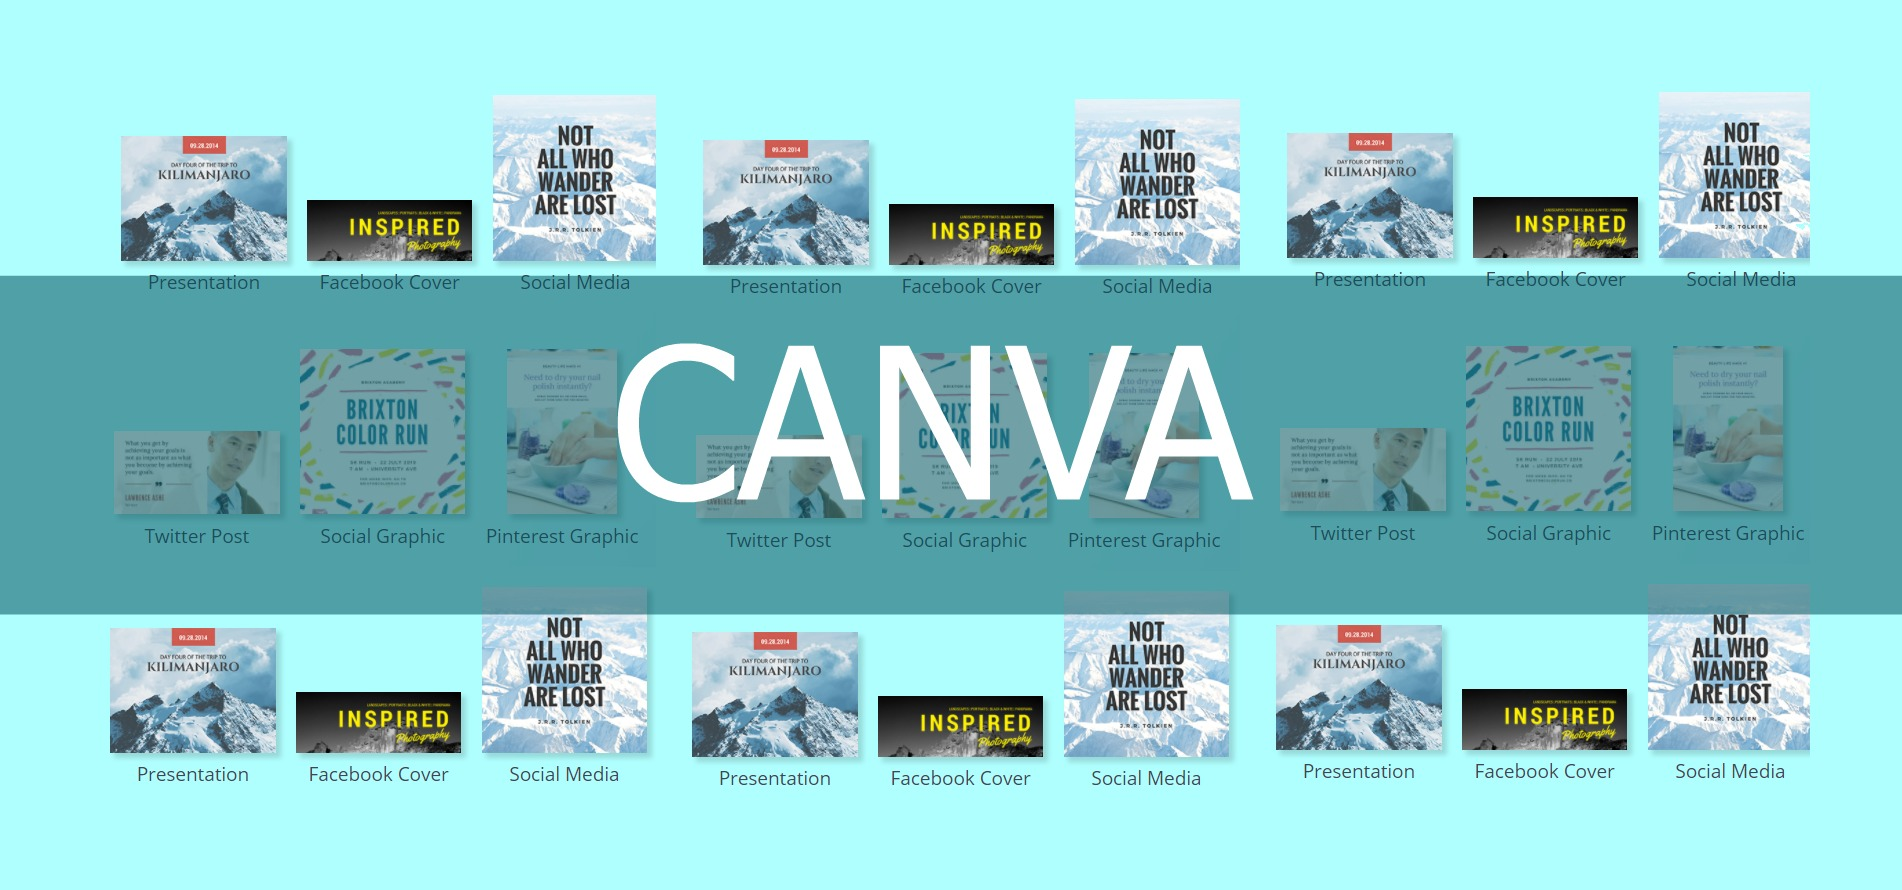 My favorite App is Canva